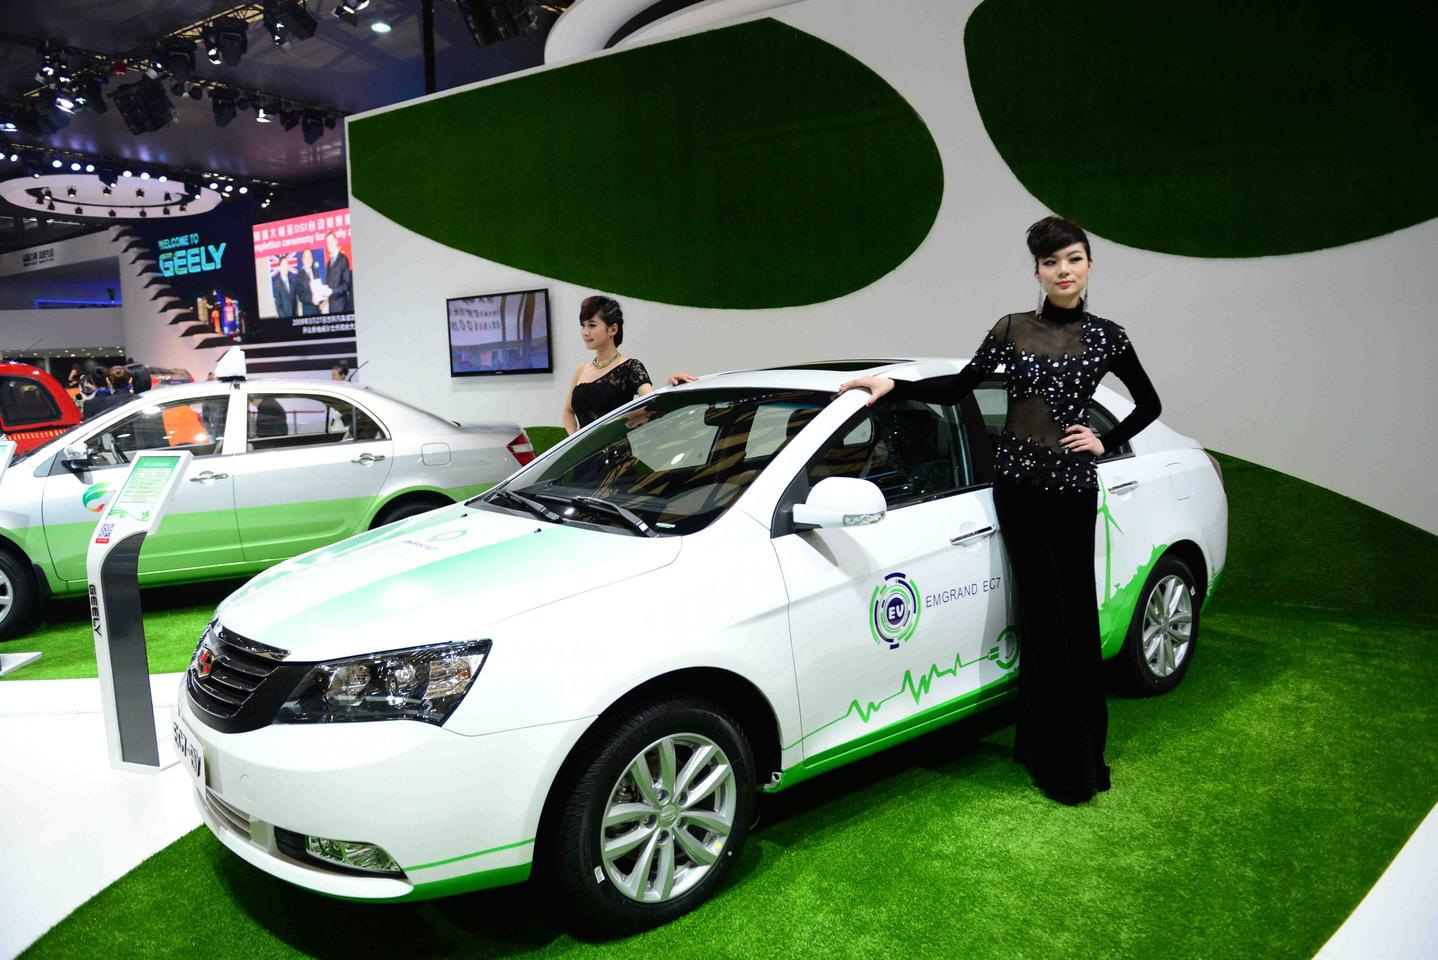 A display model of the Geely/Detroit Electric EC7-EV, spied by Gizmag at the Shanghai Auto Show